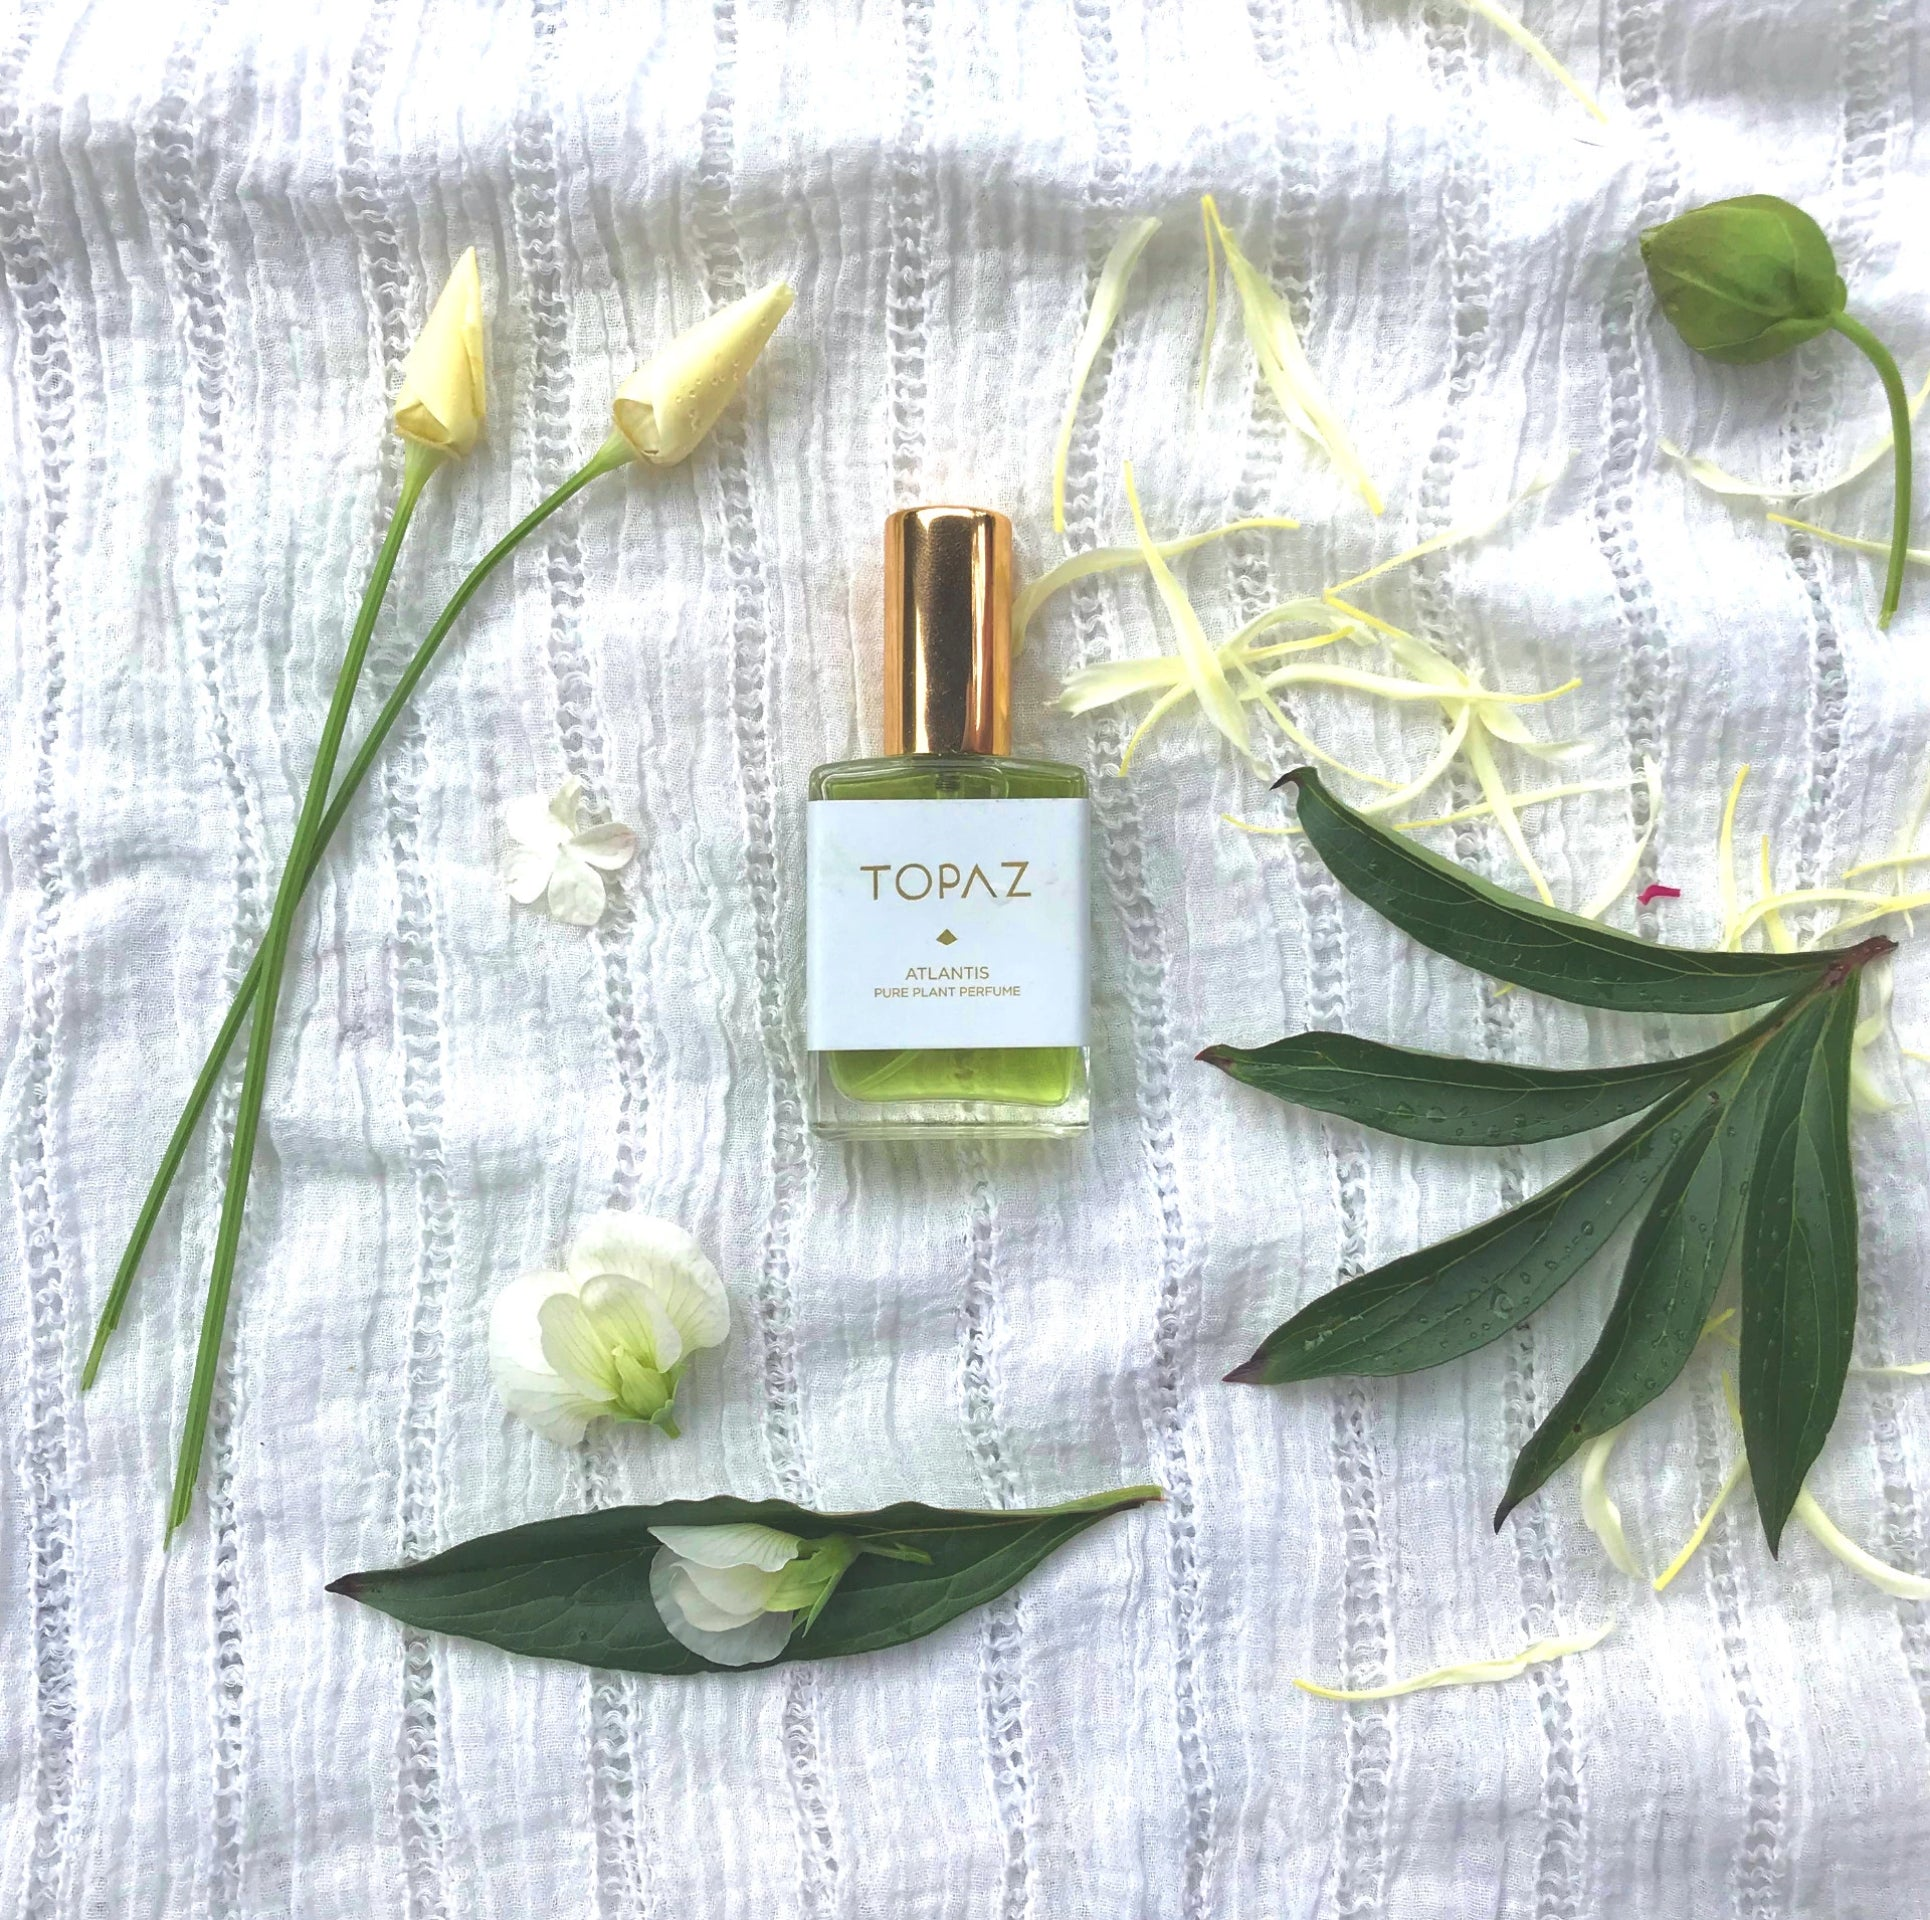 Atlantis Natural Fragrance